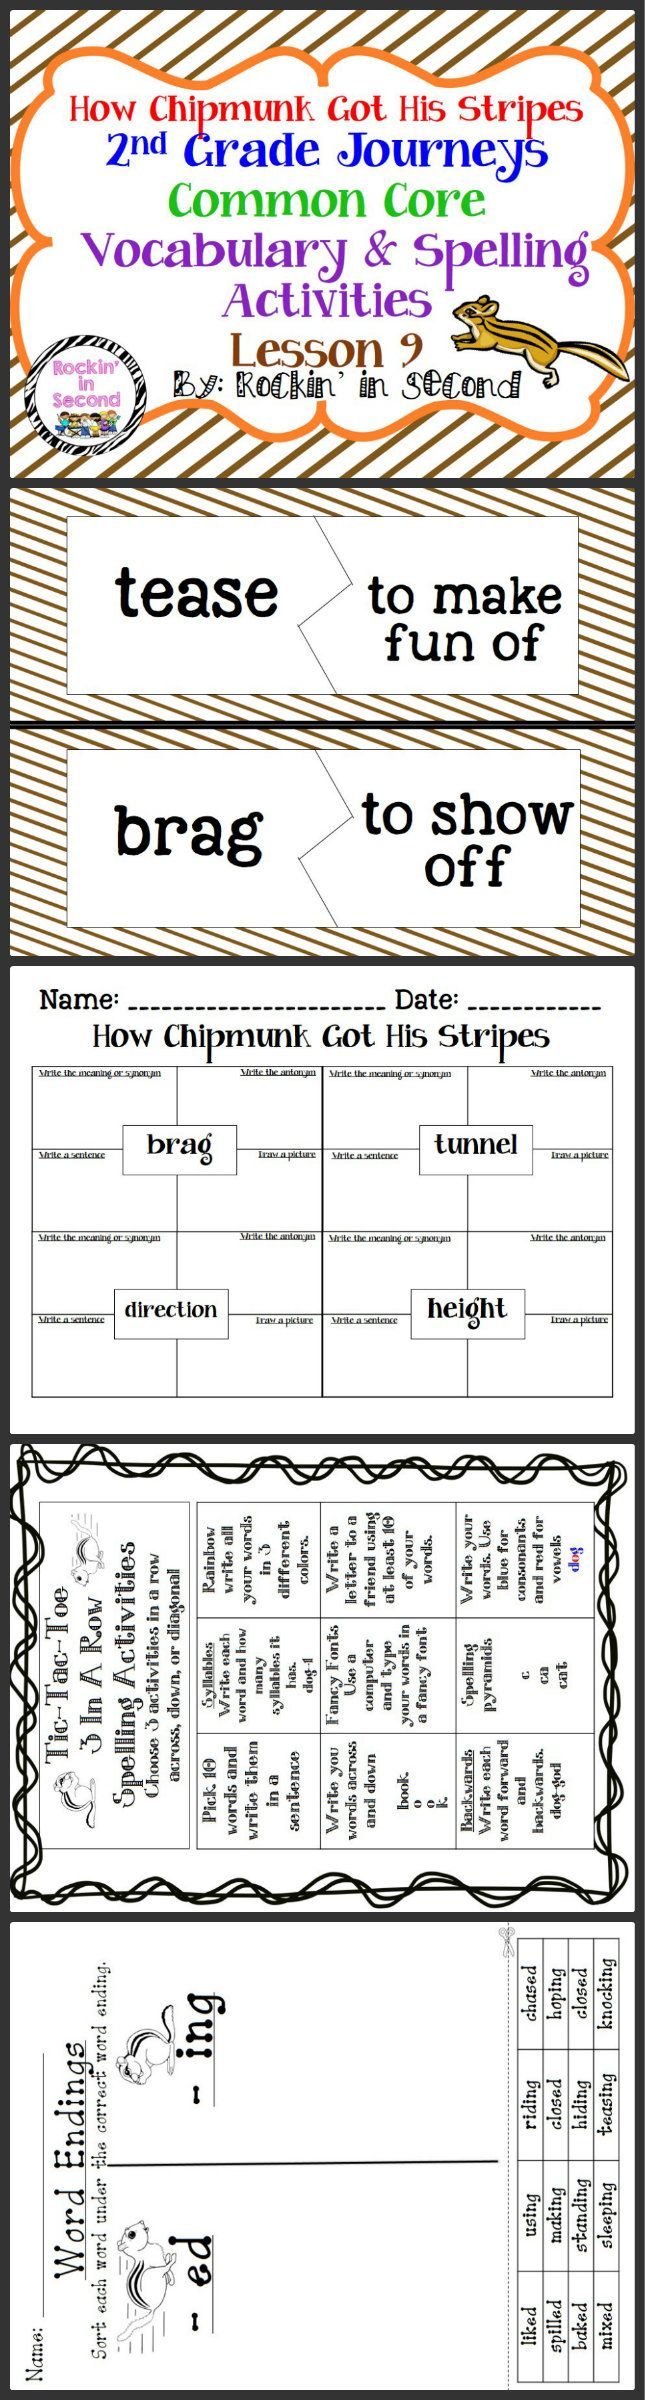 journeys how chipmunk got his stripes lesson 9 spelling vocab activities my tpt stuff. Black Bedroom Furniture Sets. Home Design Ideas